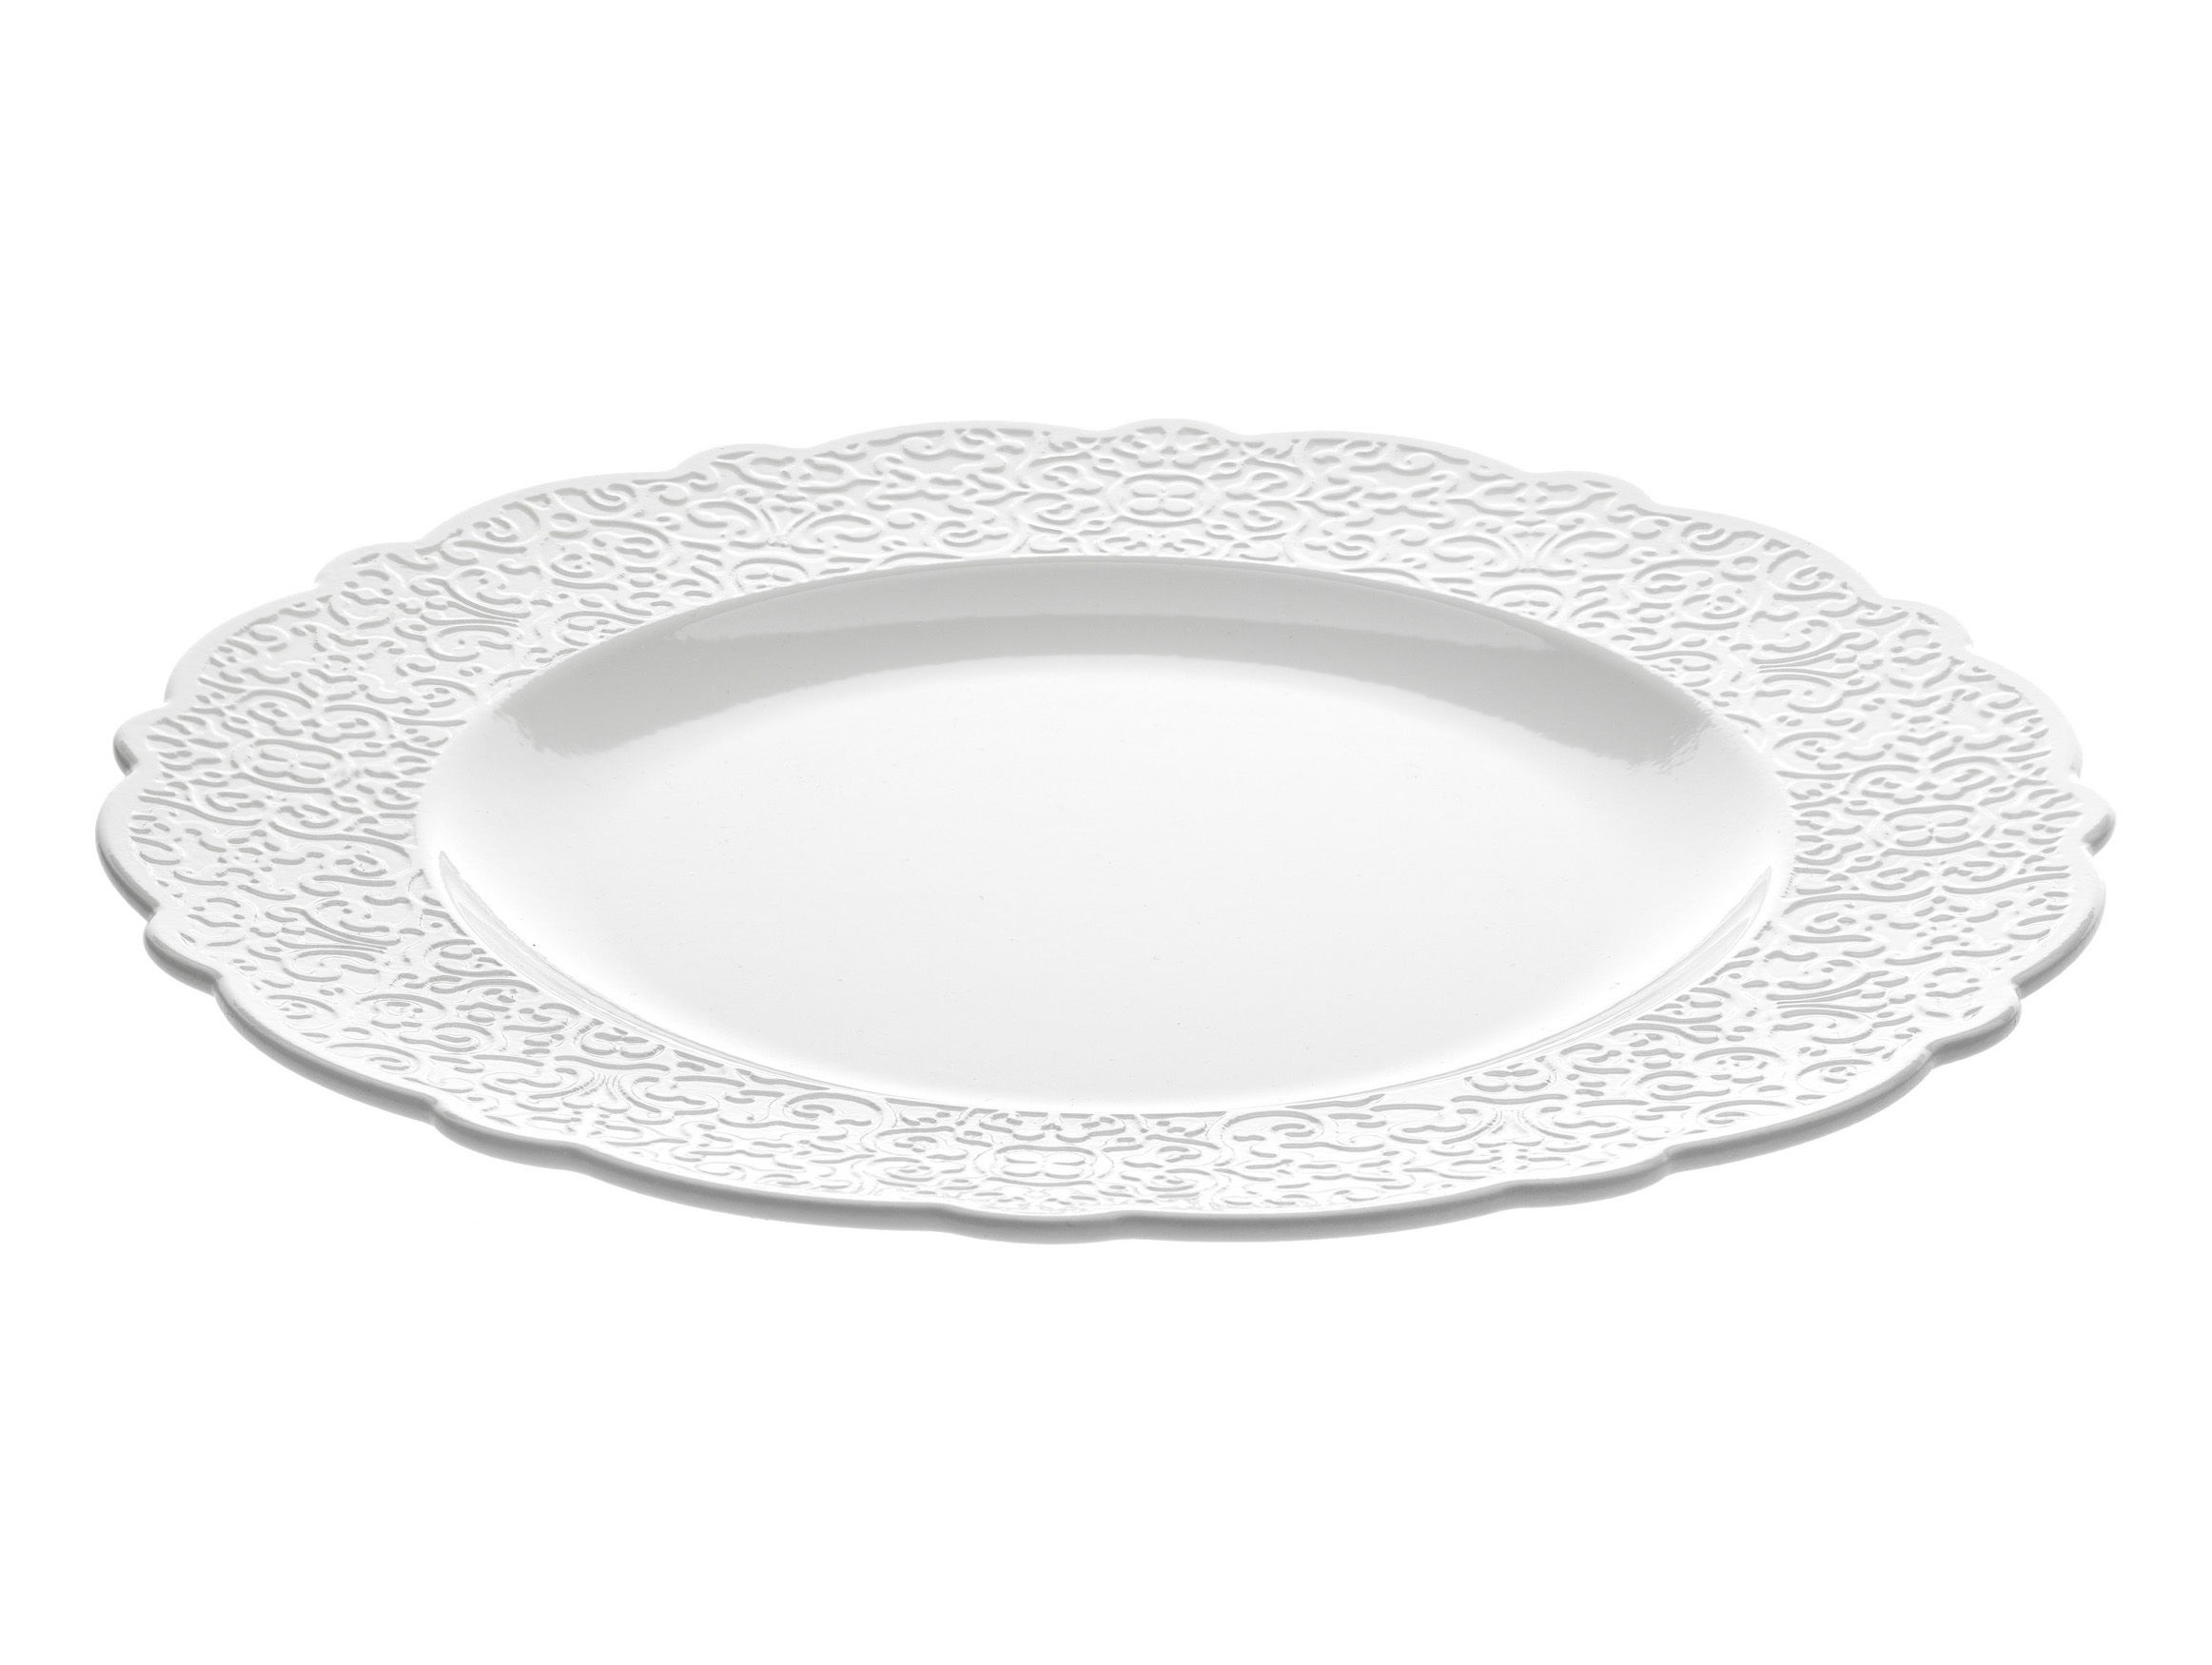 Tableware - Plates - Dressed Plate - Ø 27 cm by Alessi - White - China